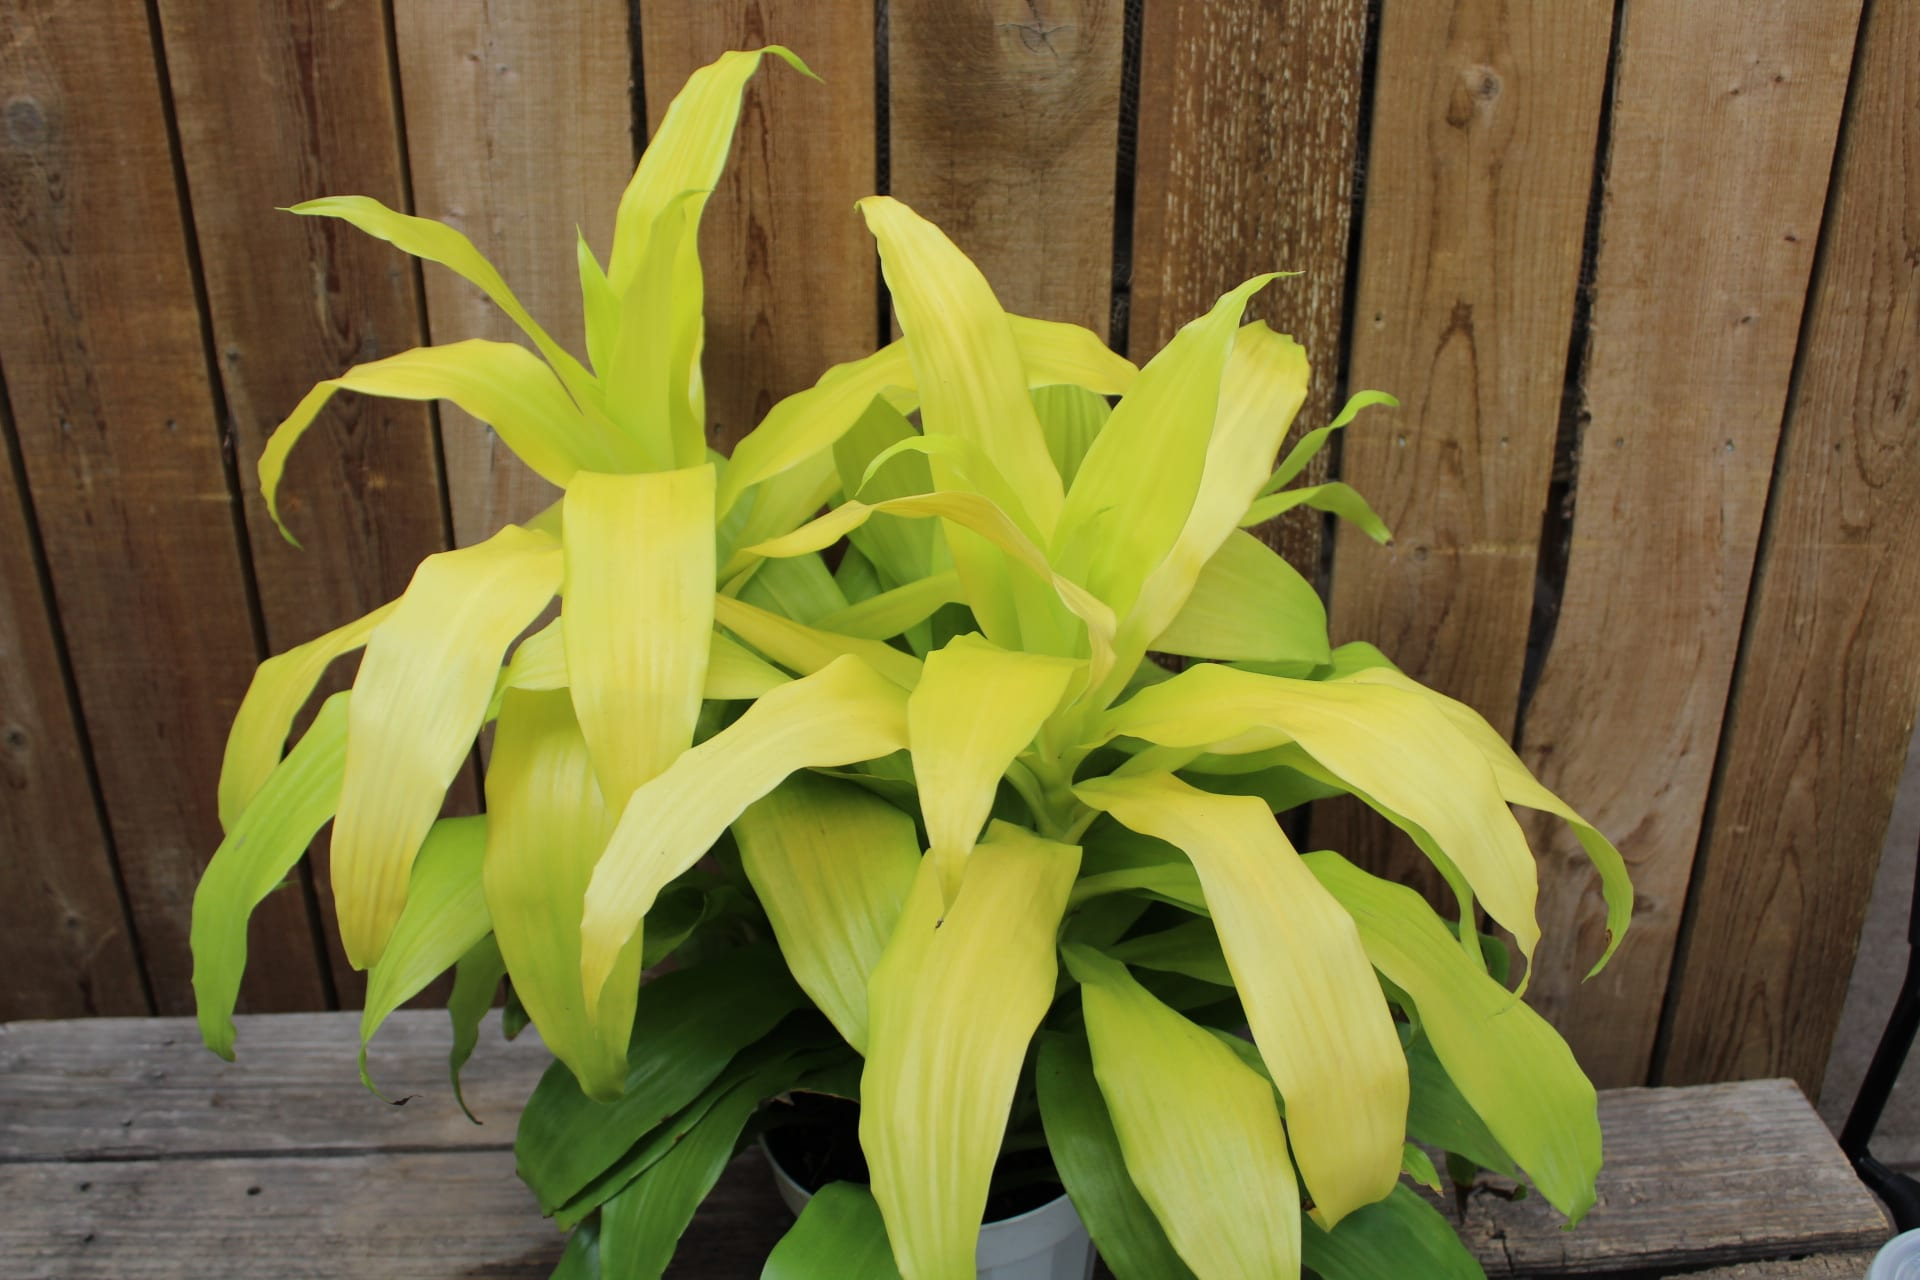 Limelight Dracaena at City Floral Greenhouse and Garden Center